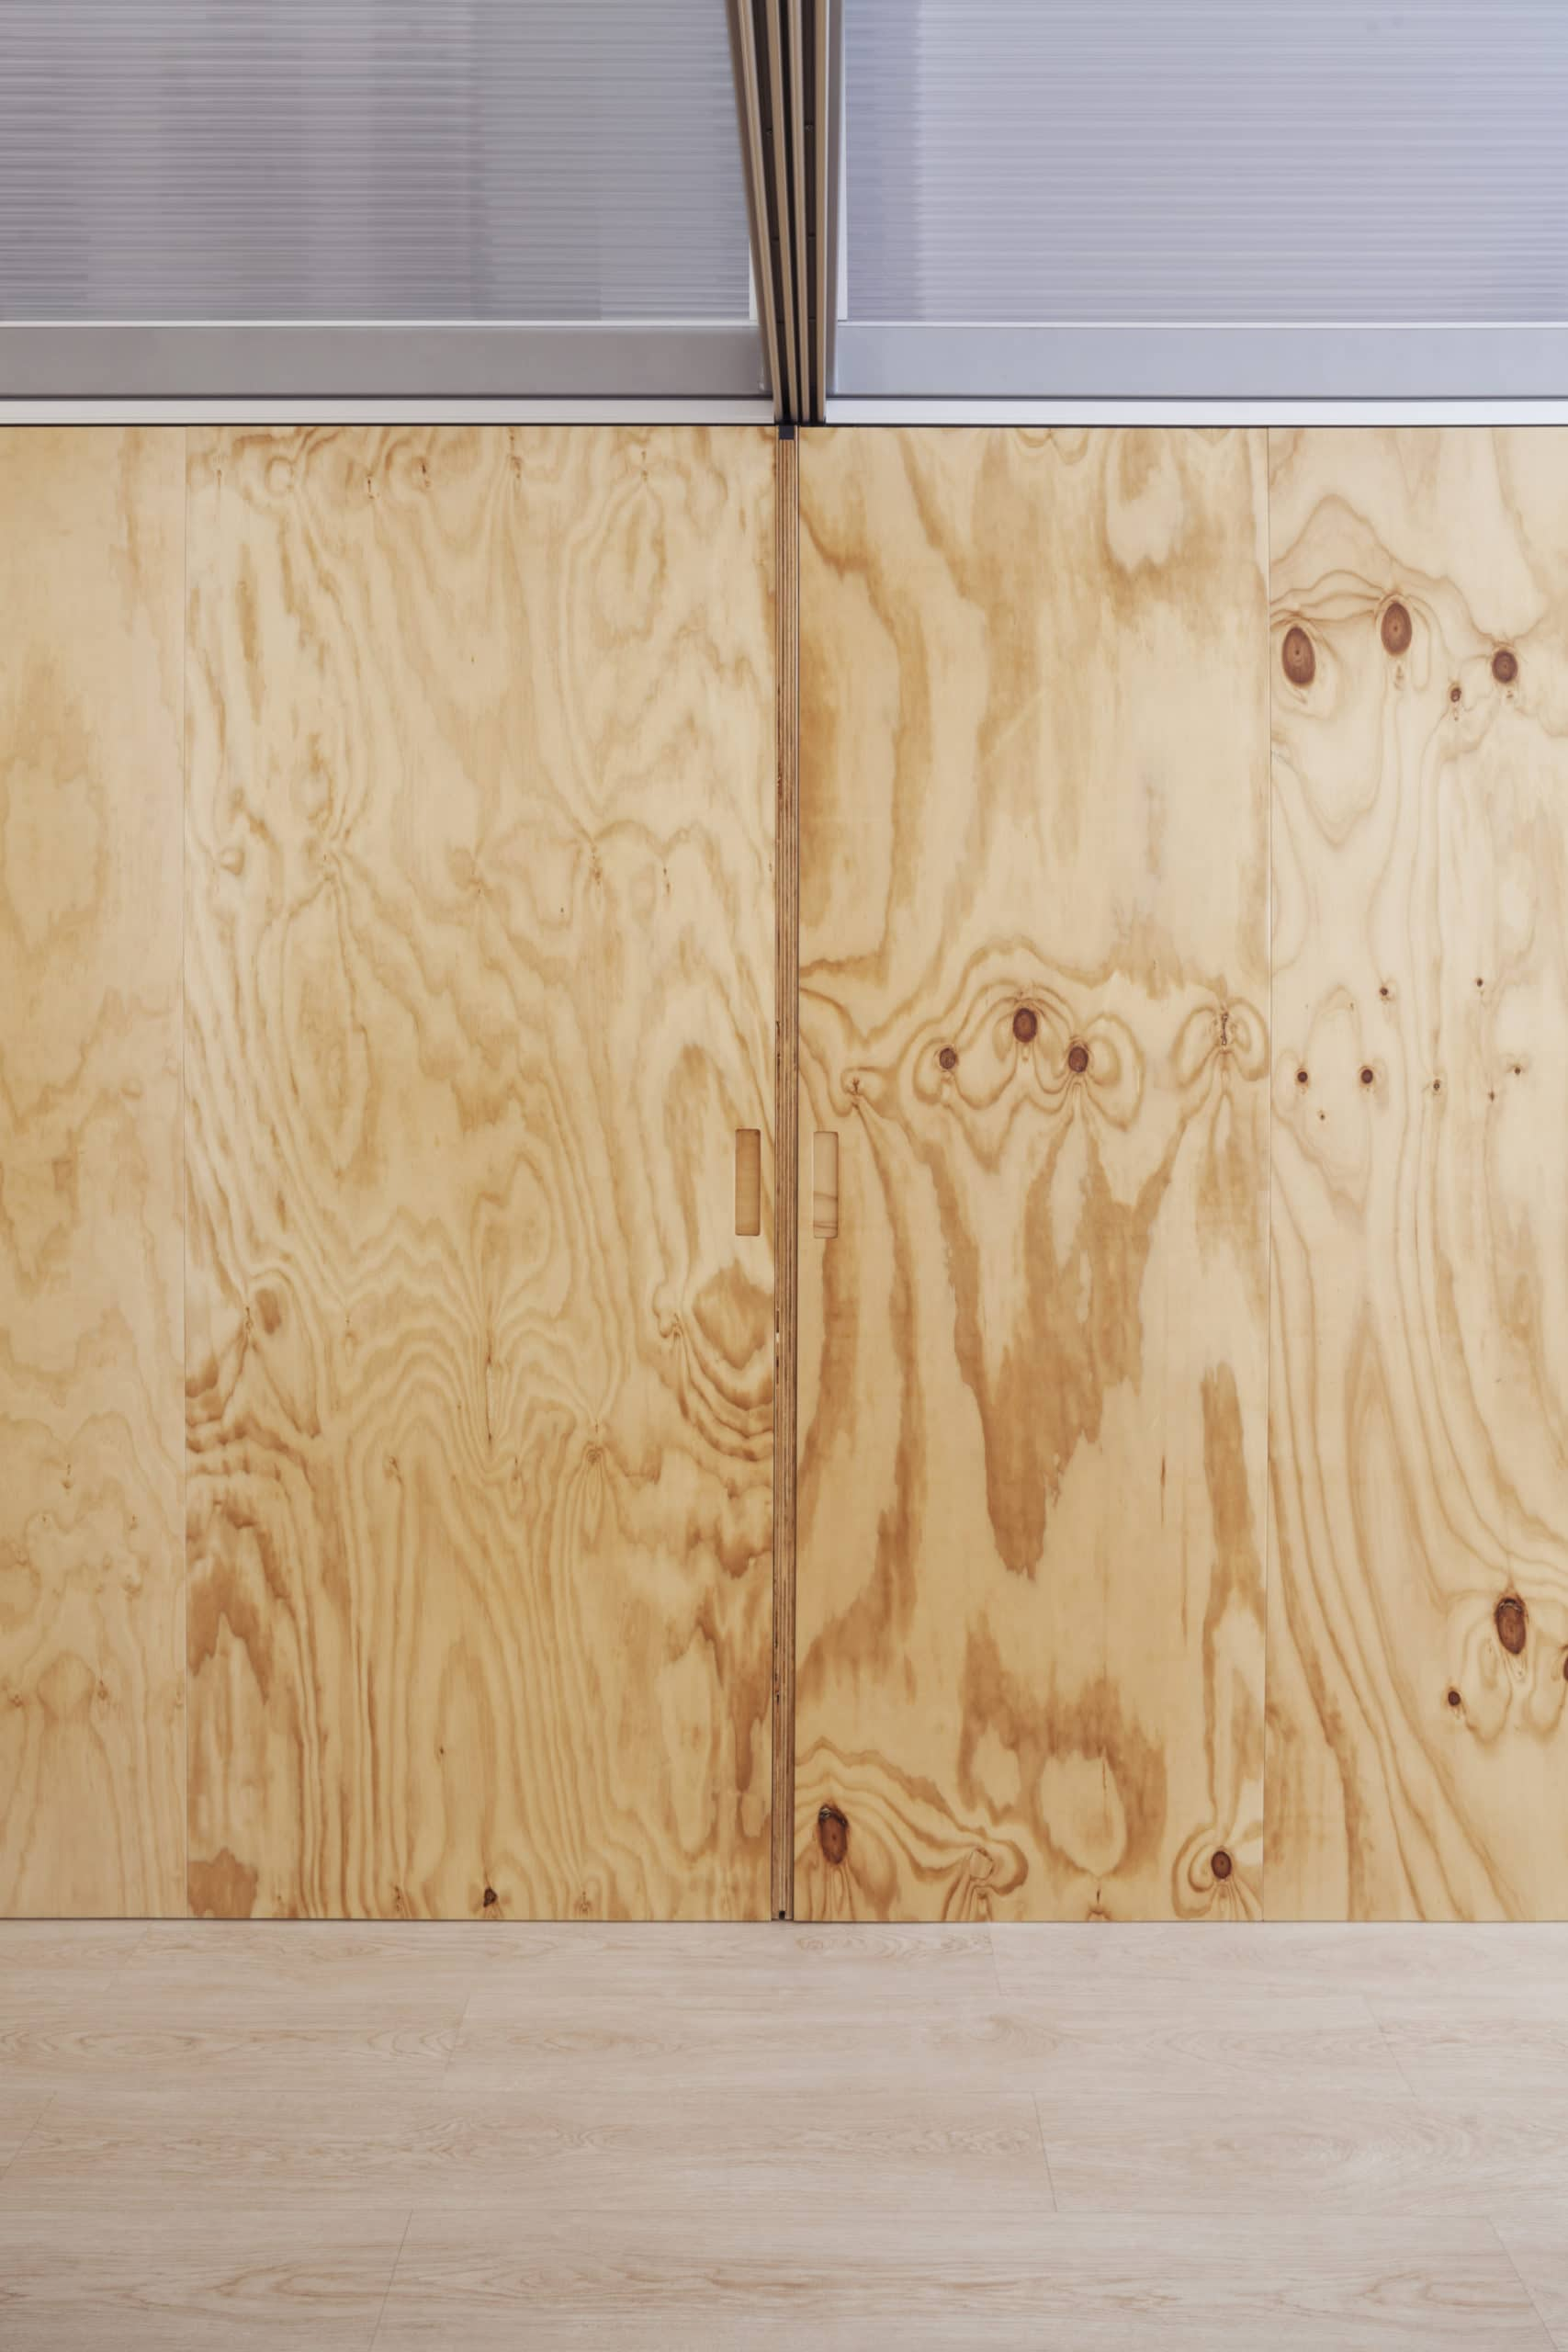 Wooden panels for AZA clinic